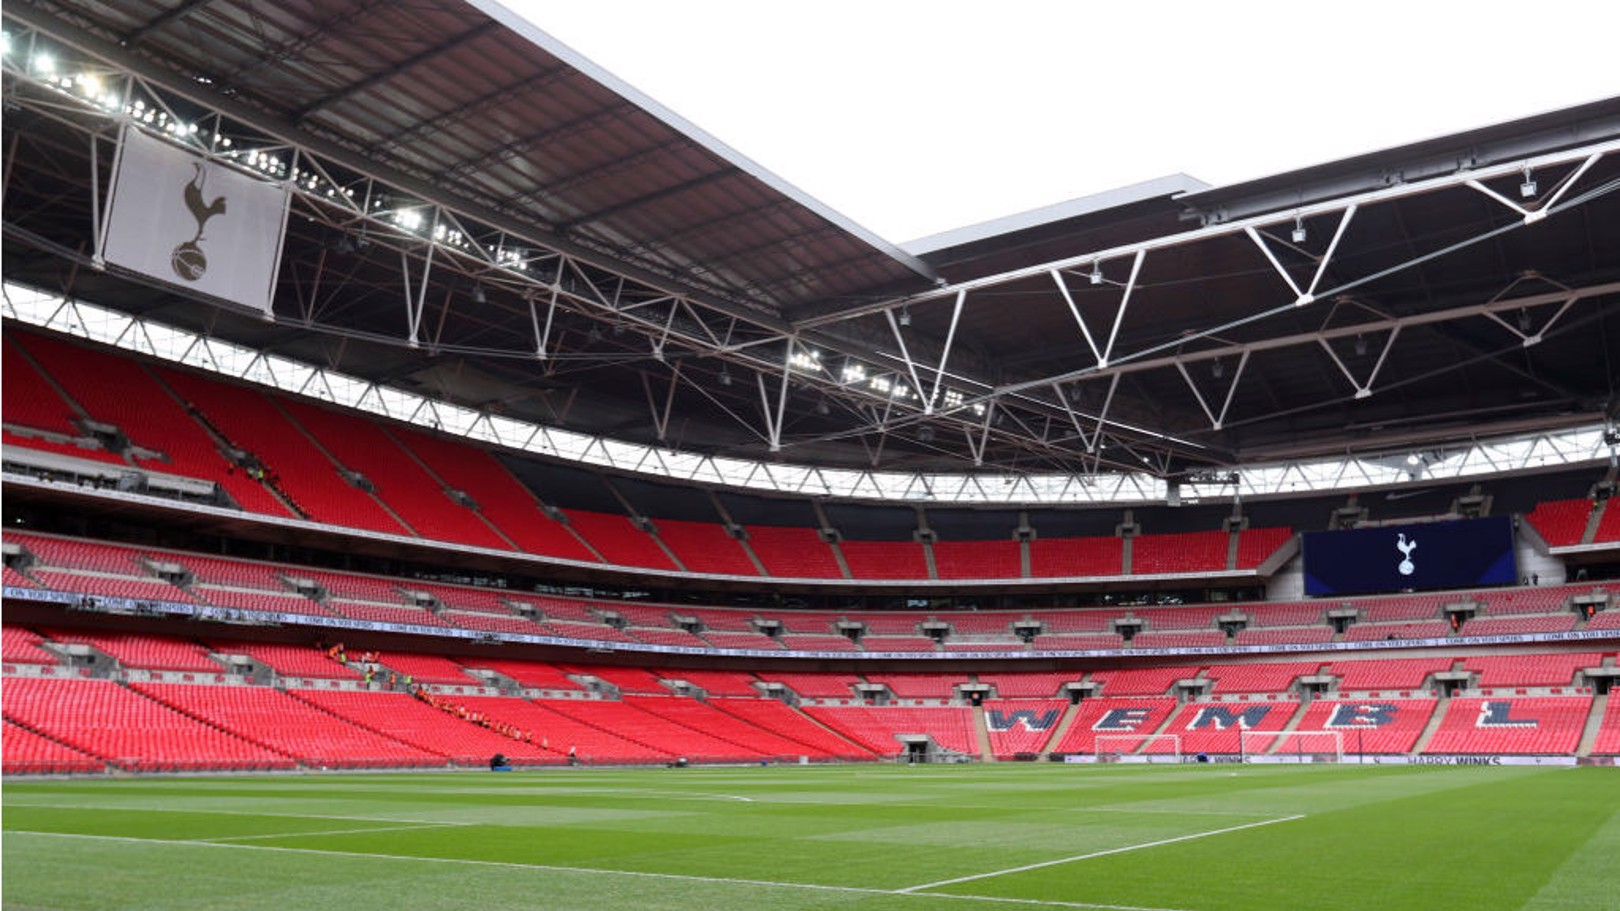 BLUE WEMBLEY: Venue for City v Chelsea in the Carabao Cup final